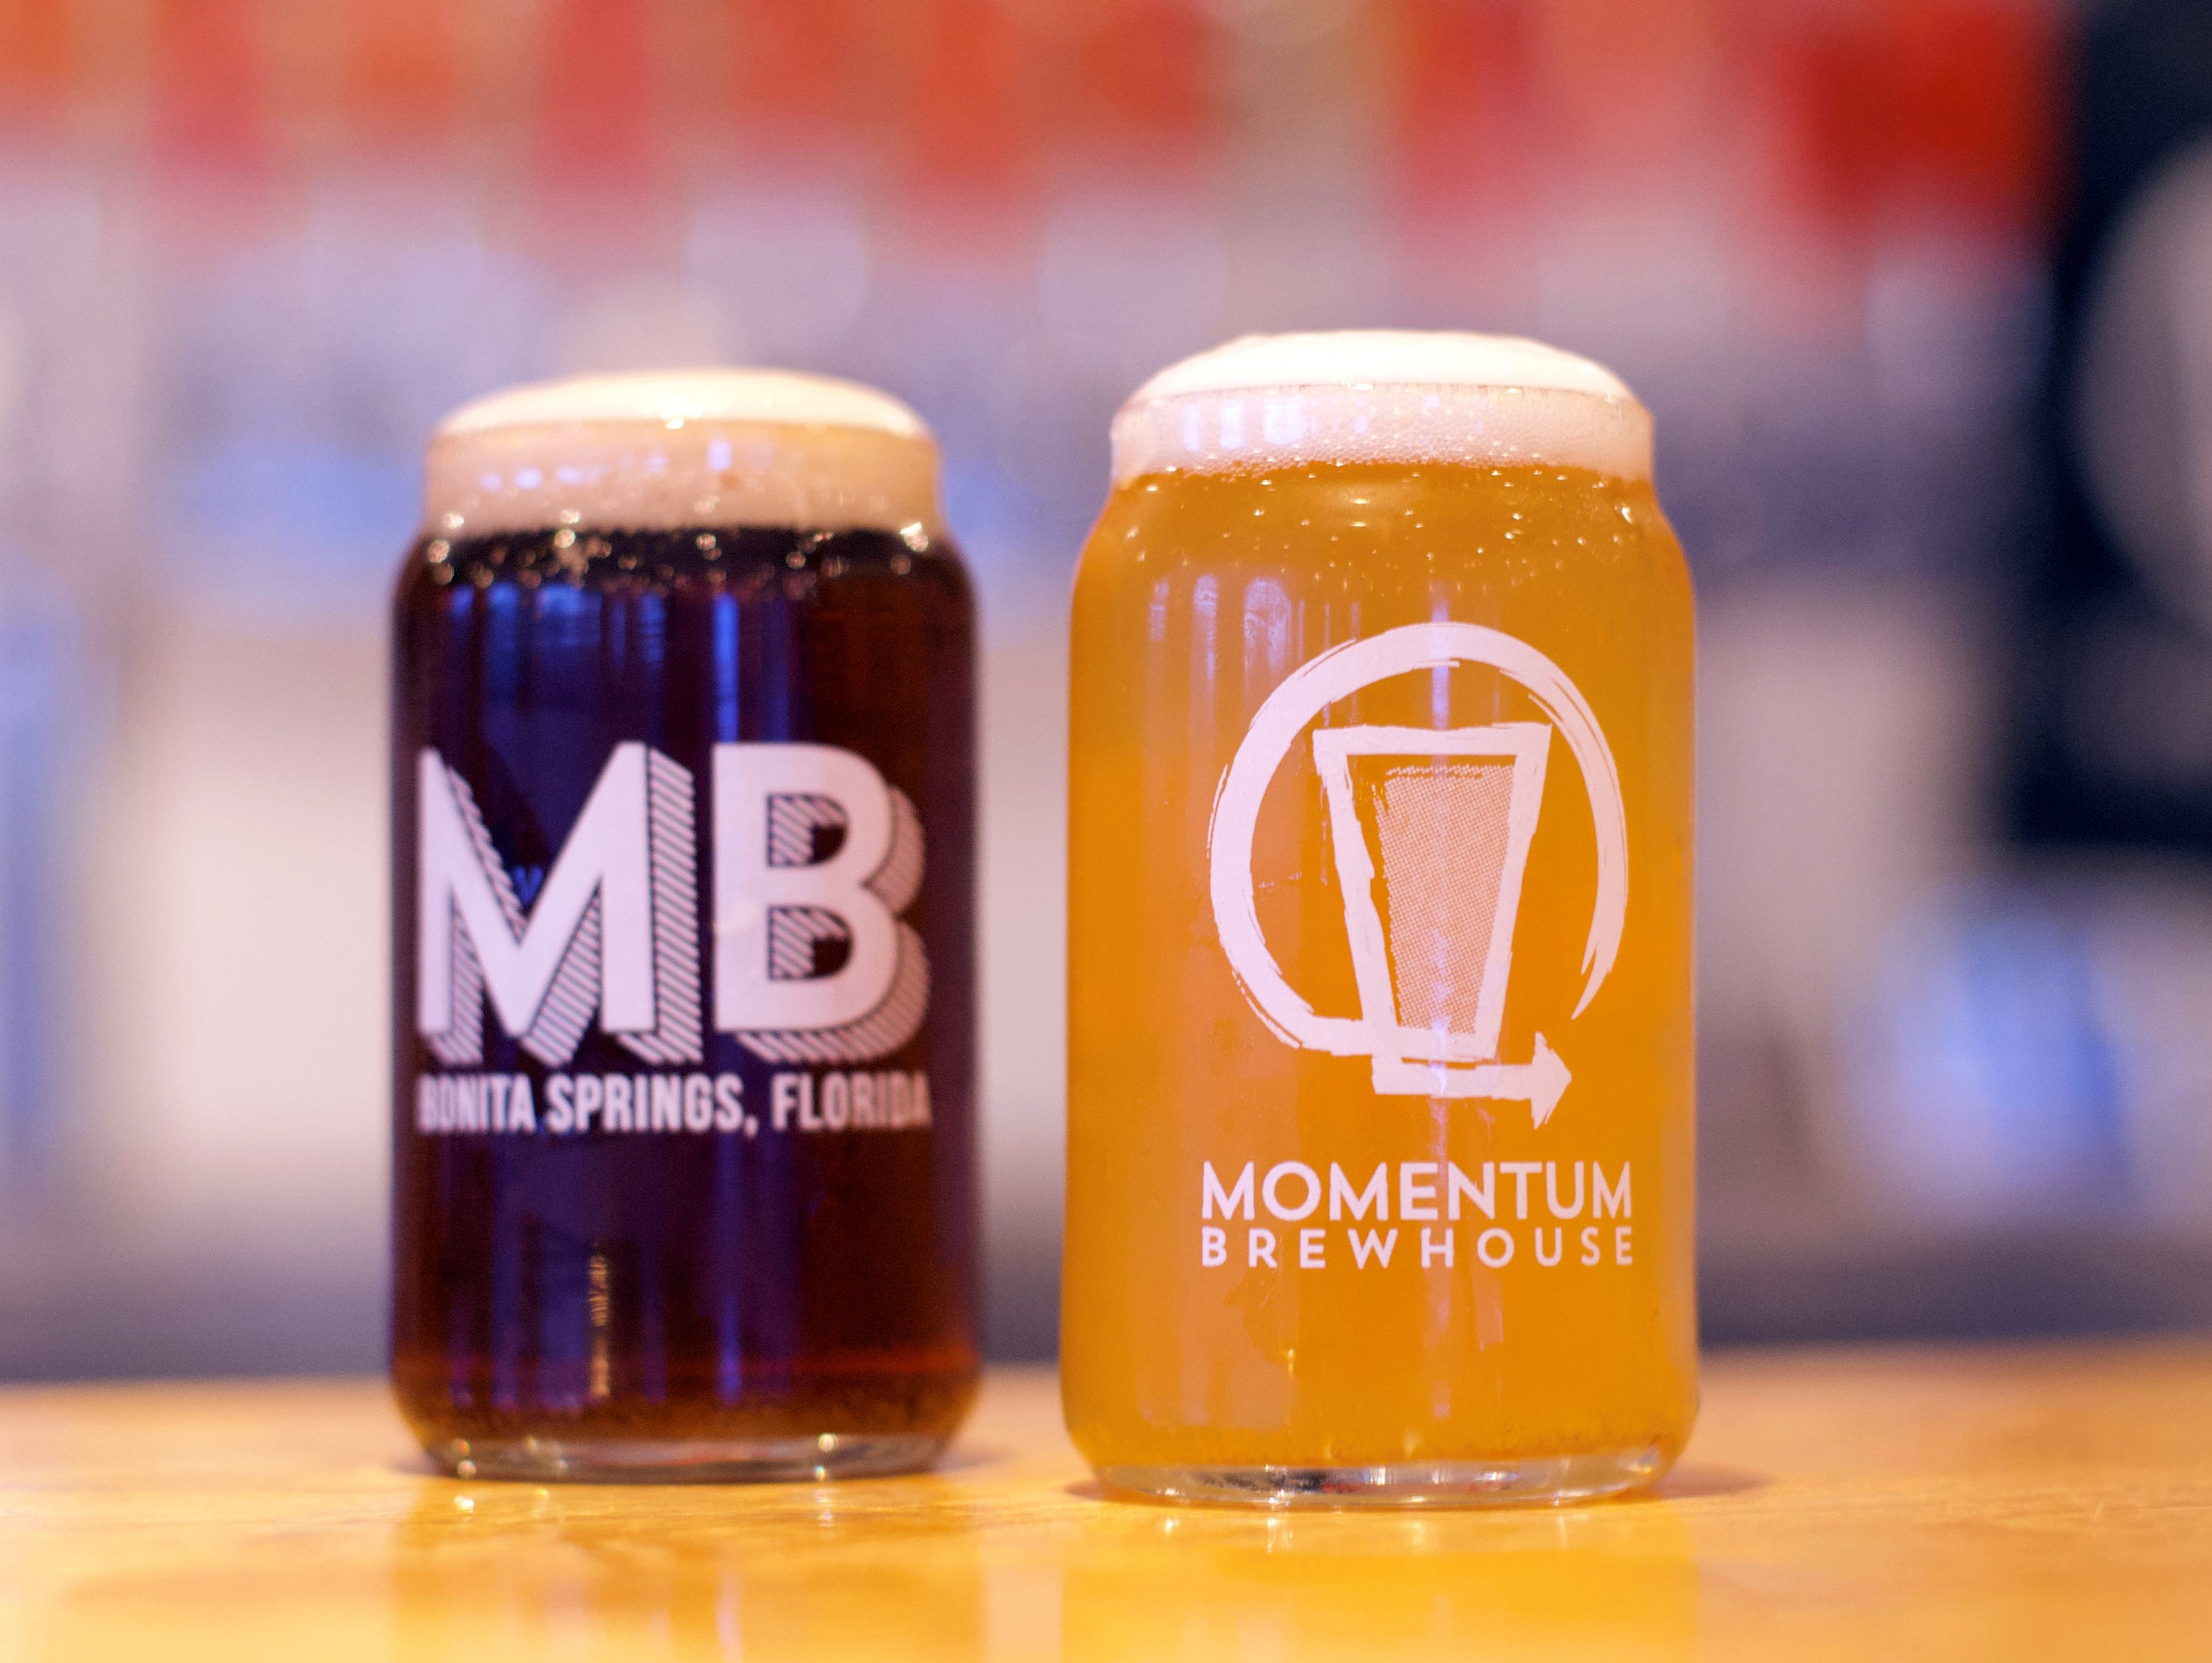 Momentum Brewhouse carries 12 of its beers on tap now but plans to at least double that when it relocates this spring in Bonita Springs.